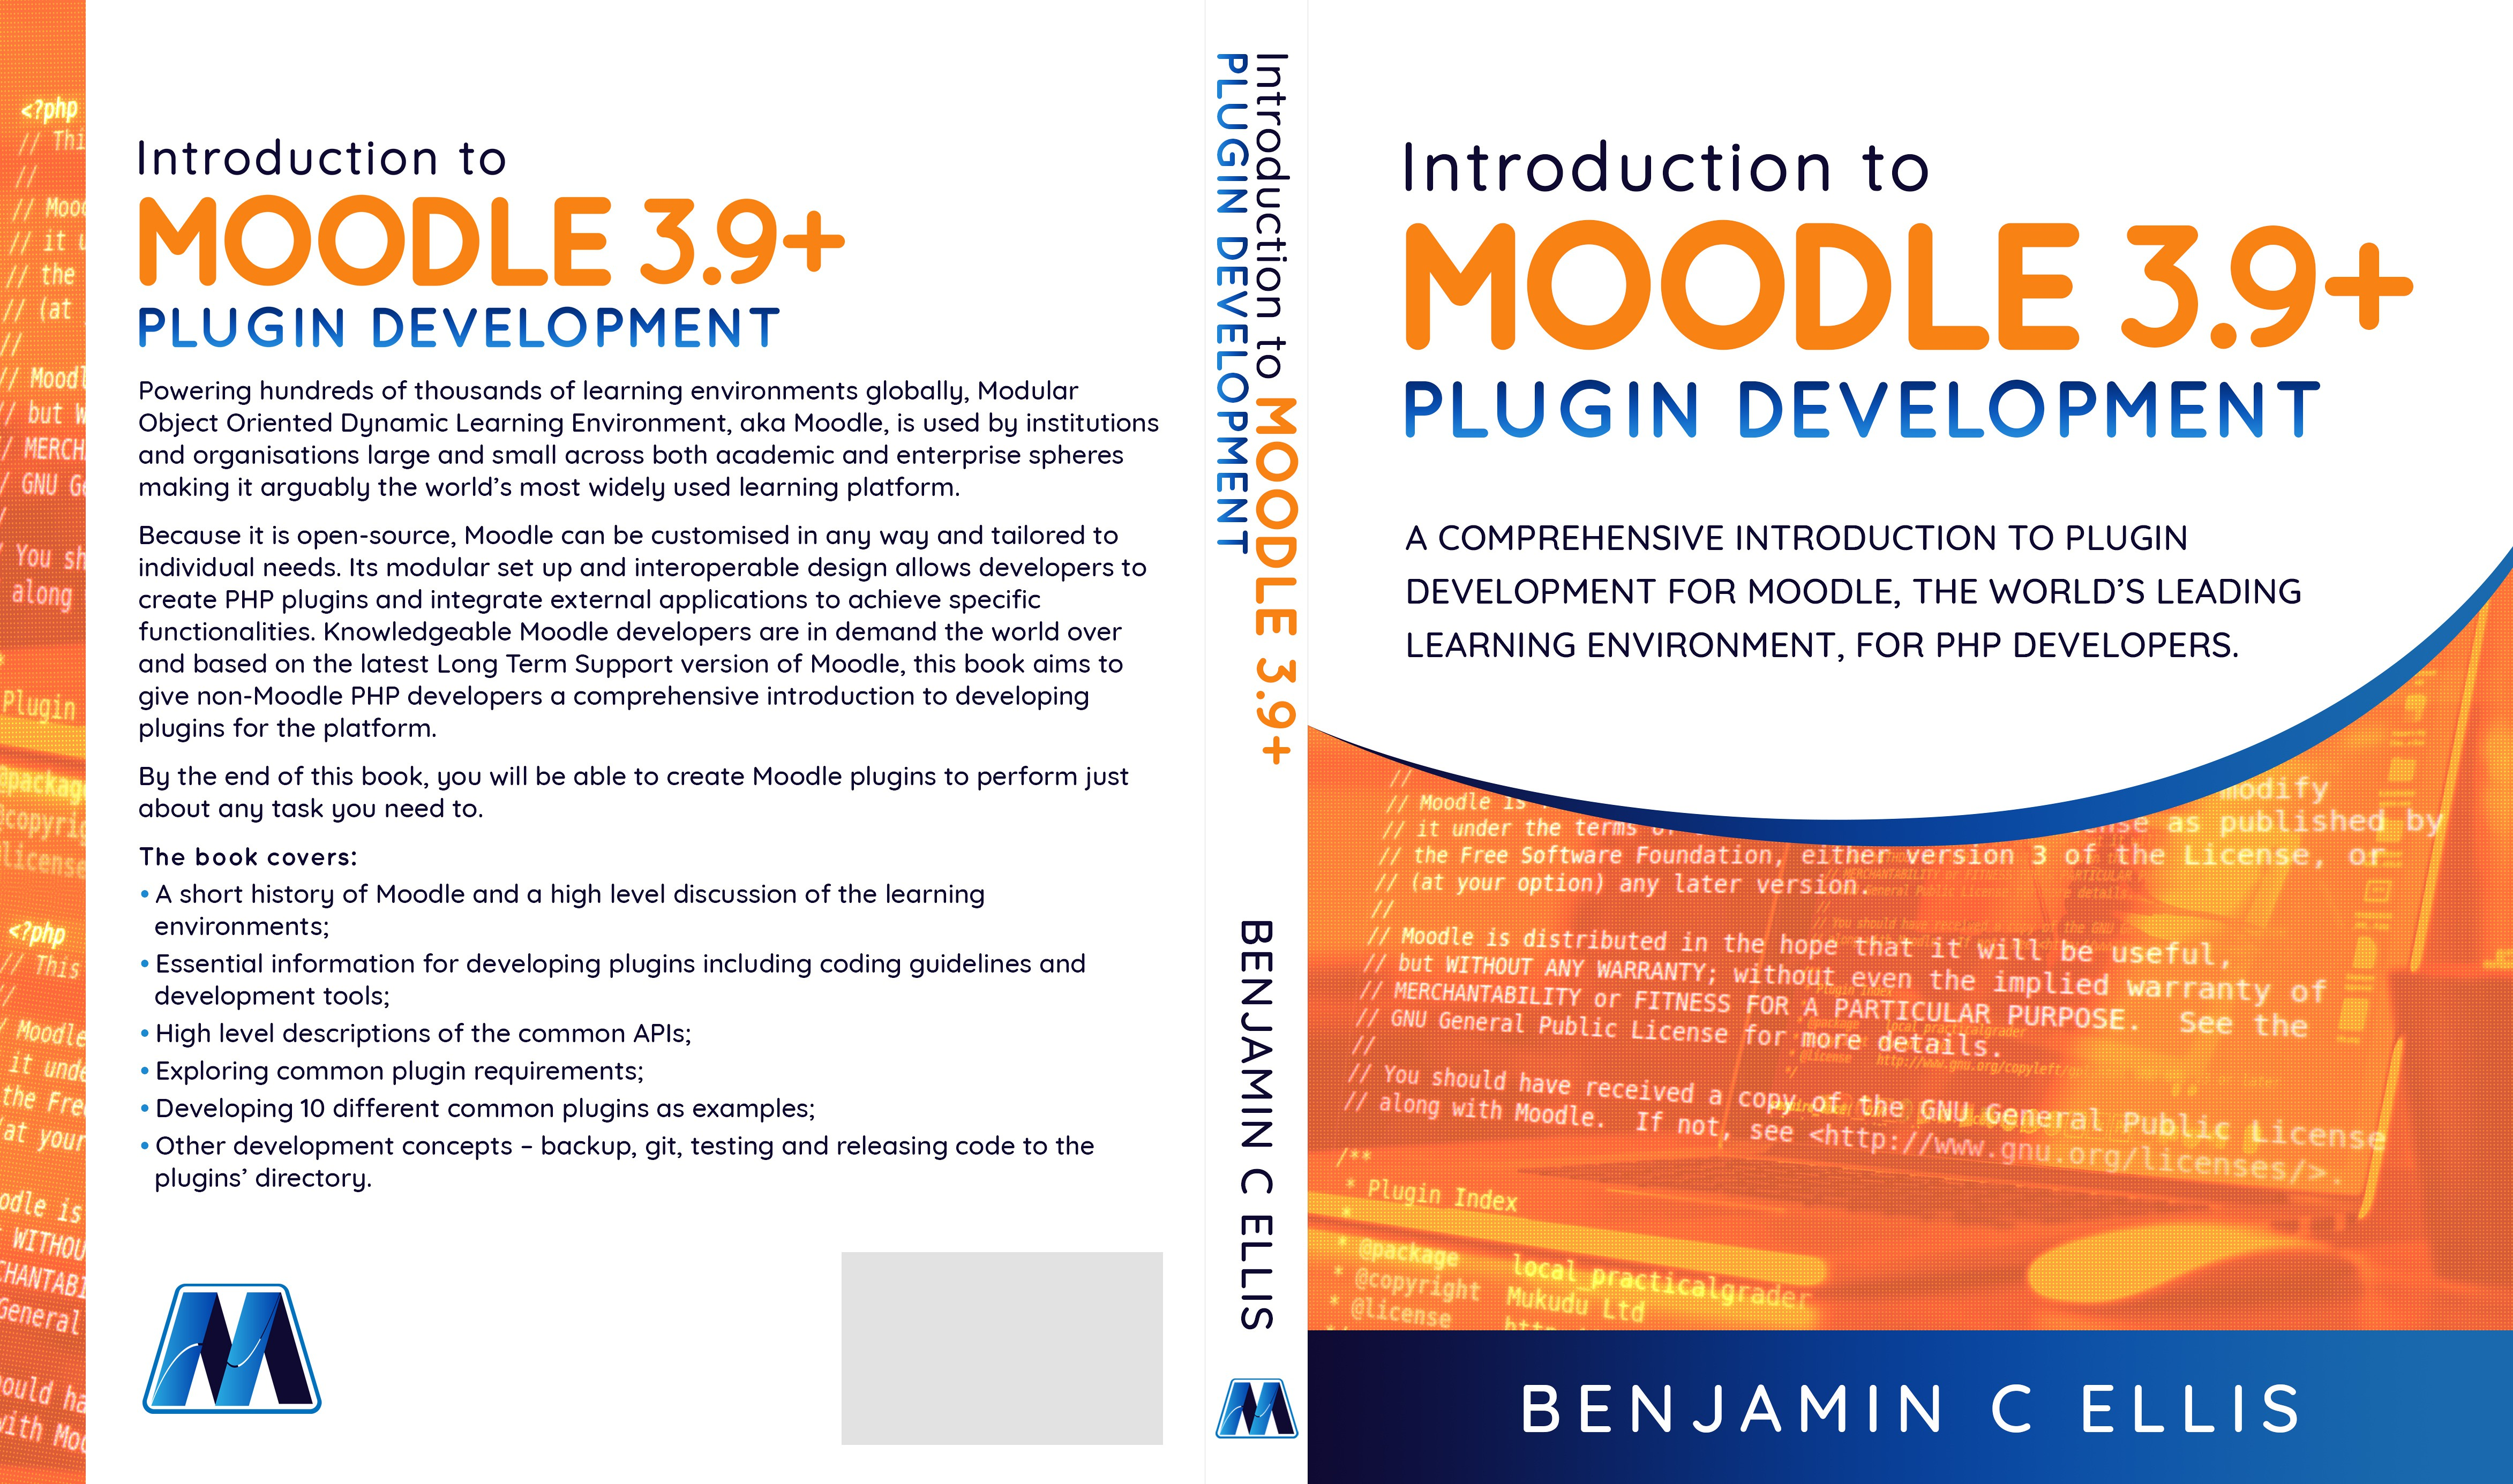 Simple, Elegant, Recognisable Technical Book Cover